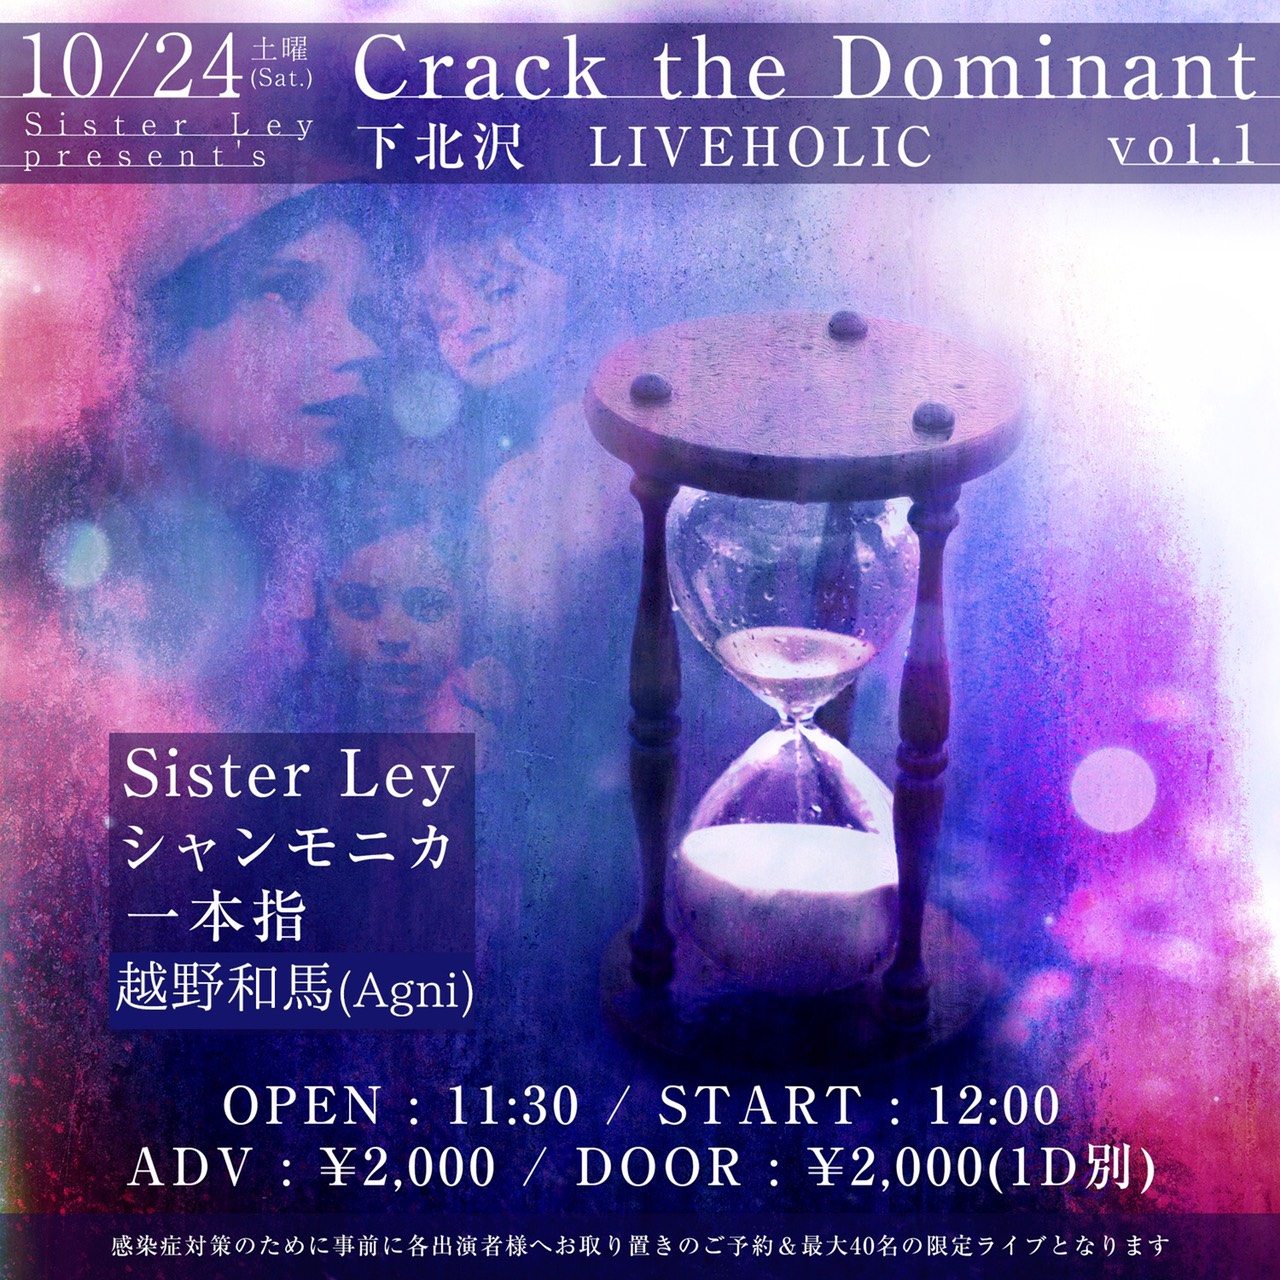 Sister Ley presents Crack the Dominant Vol.1